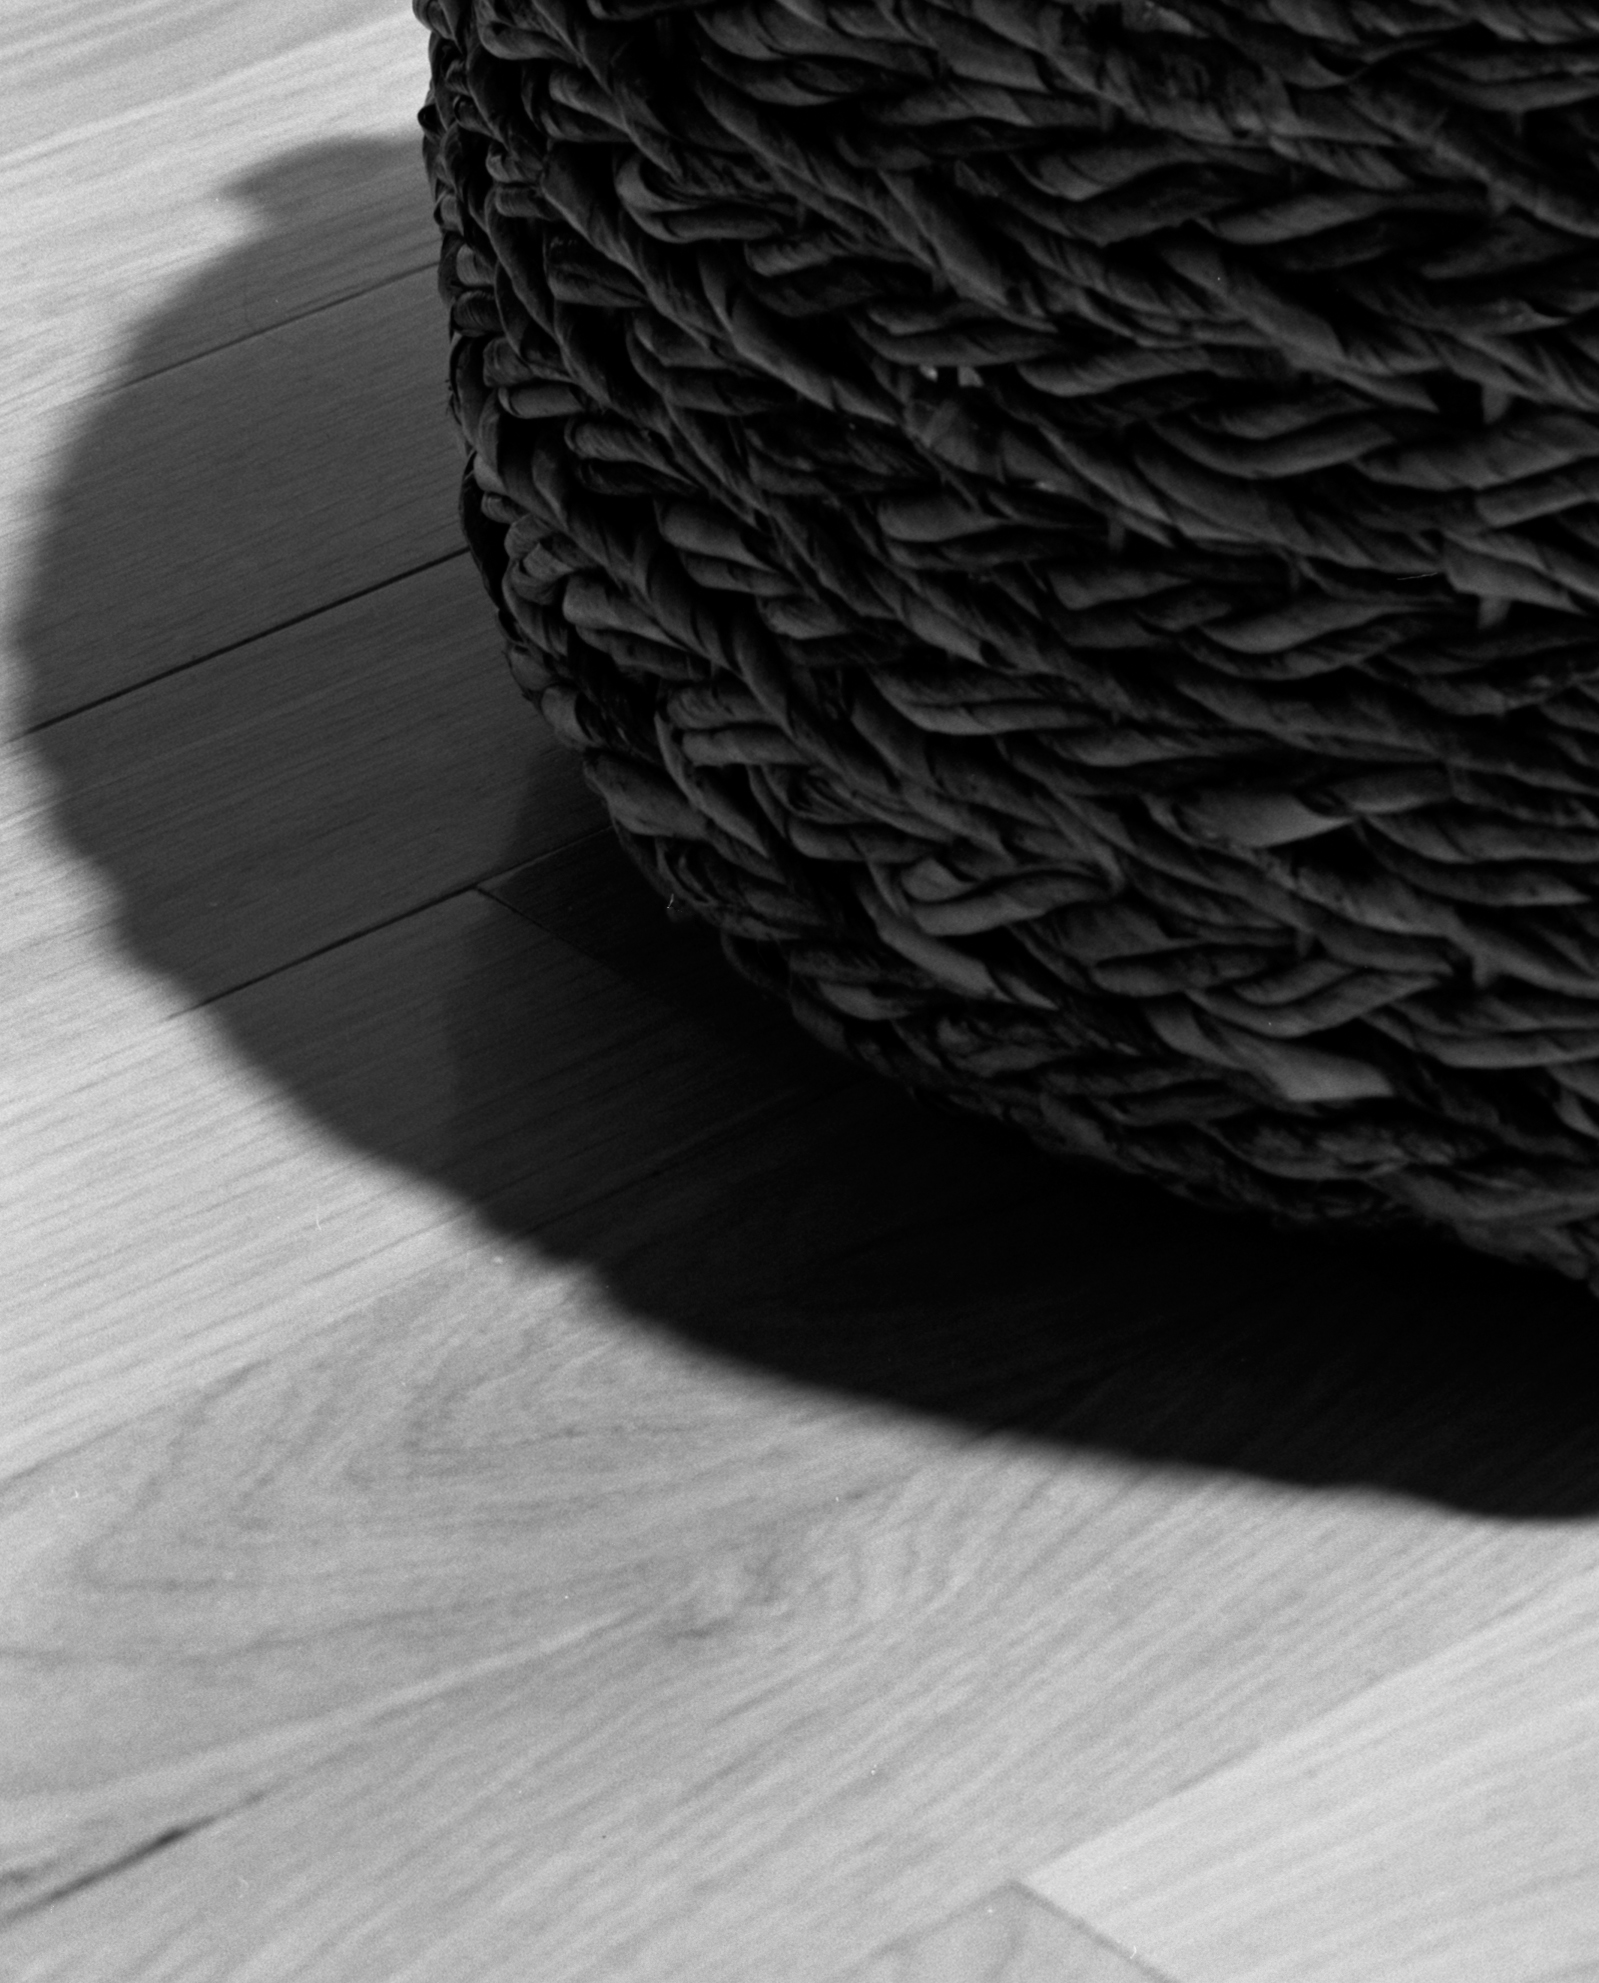 4x5_for_365_project_020_Basket_Abstract.jpg